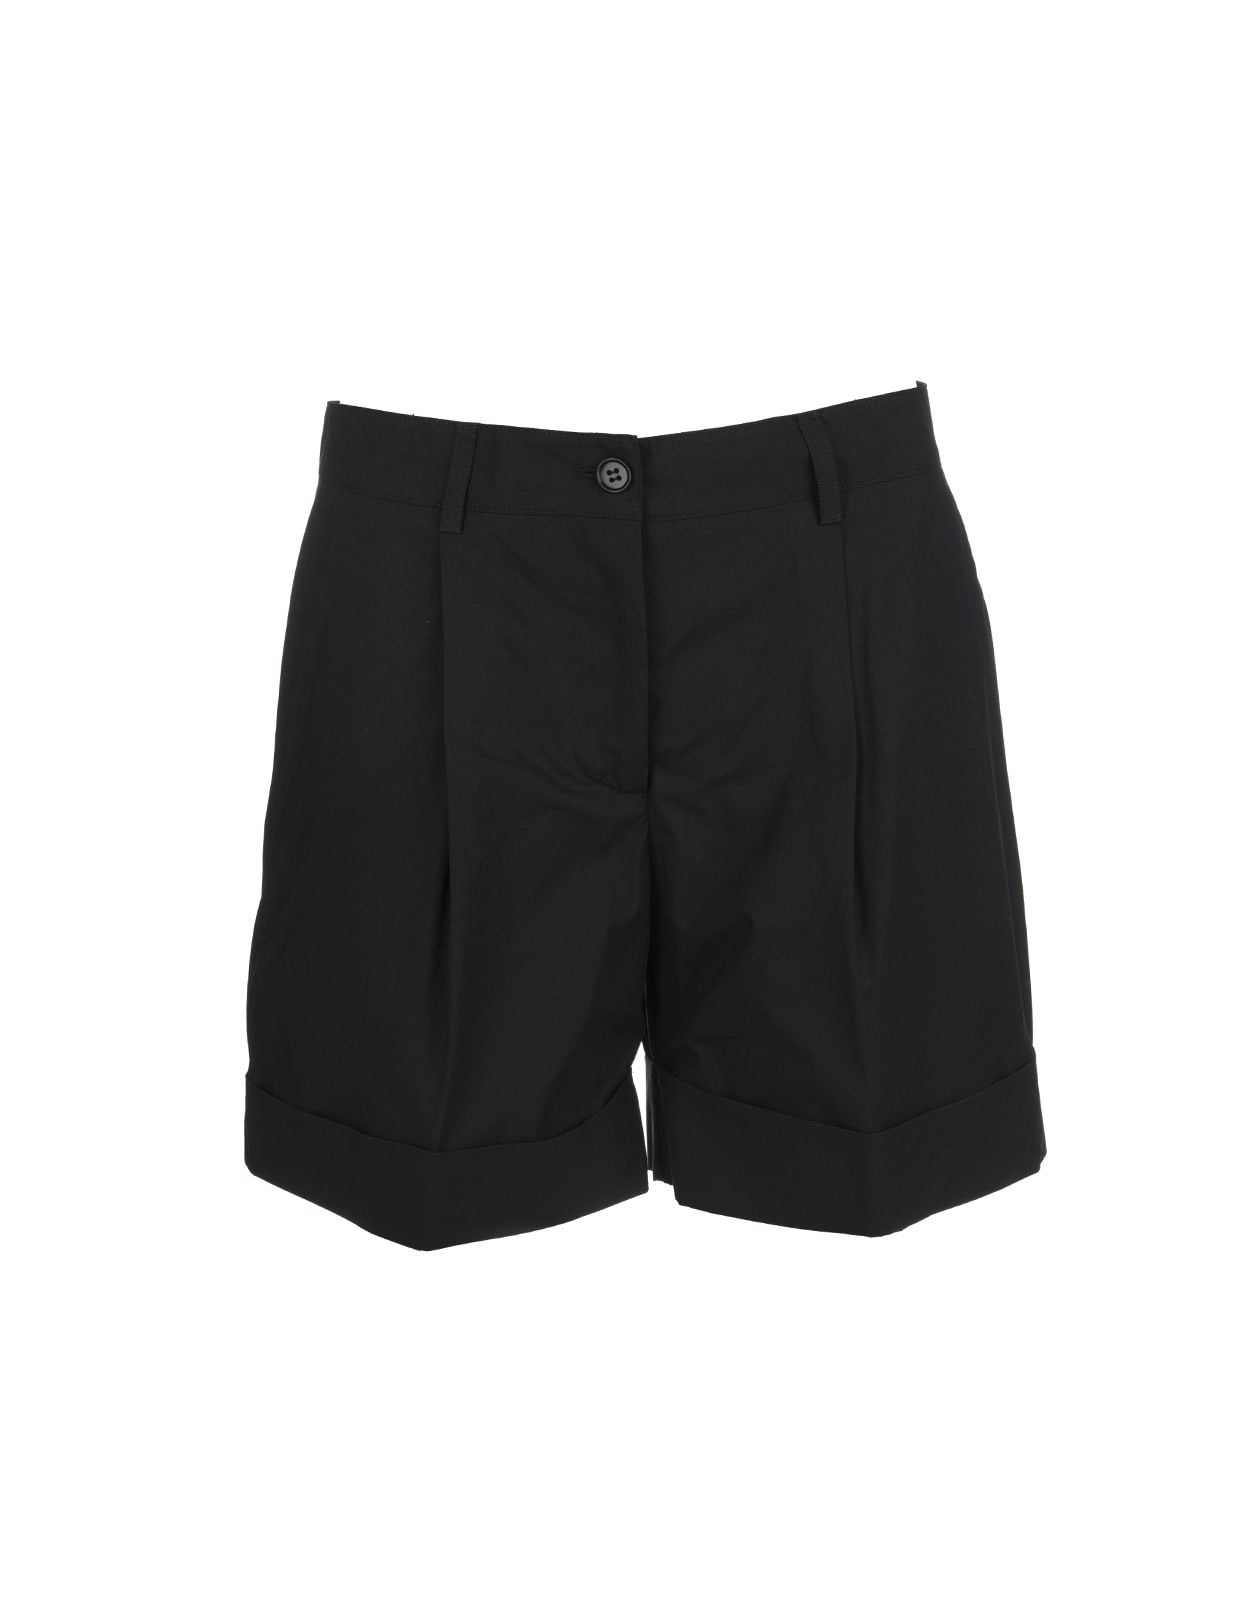 A.R.O.H. shorts in black cotton with medium waist, front pleat, side america pockets, flap with zip and button, belt loops, cuffed bottom, mid-thigh length and soft fit. Composition: 100% Cotton